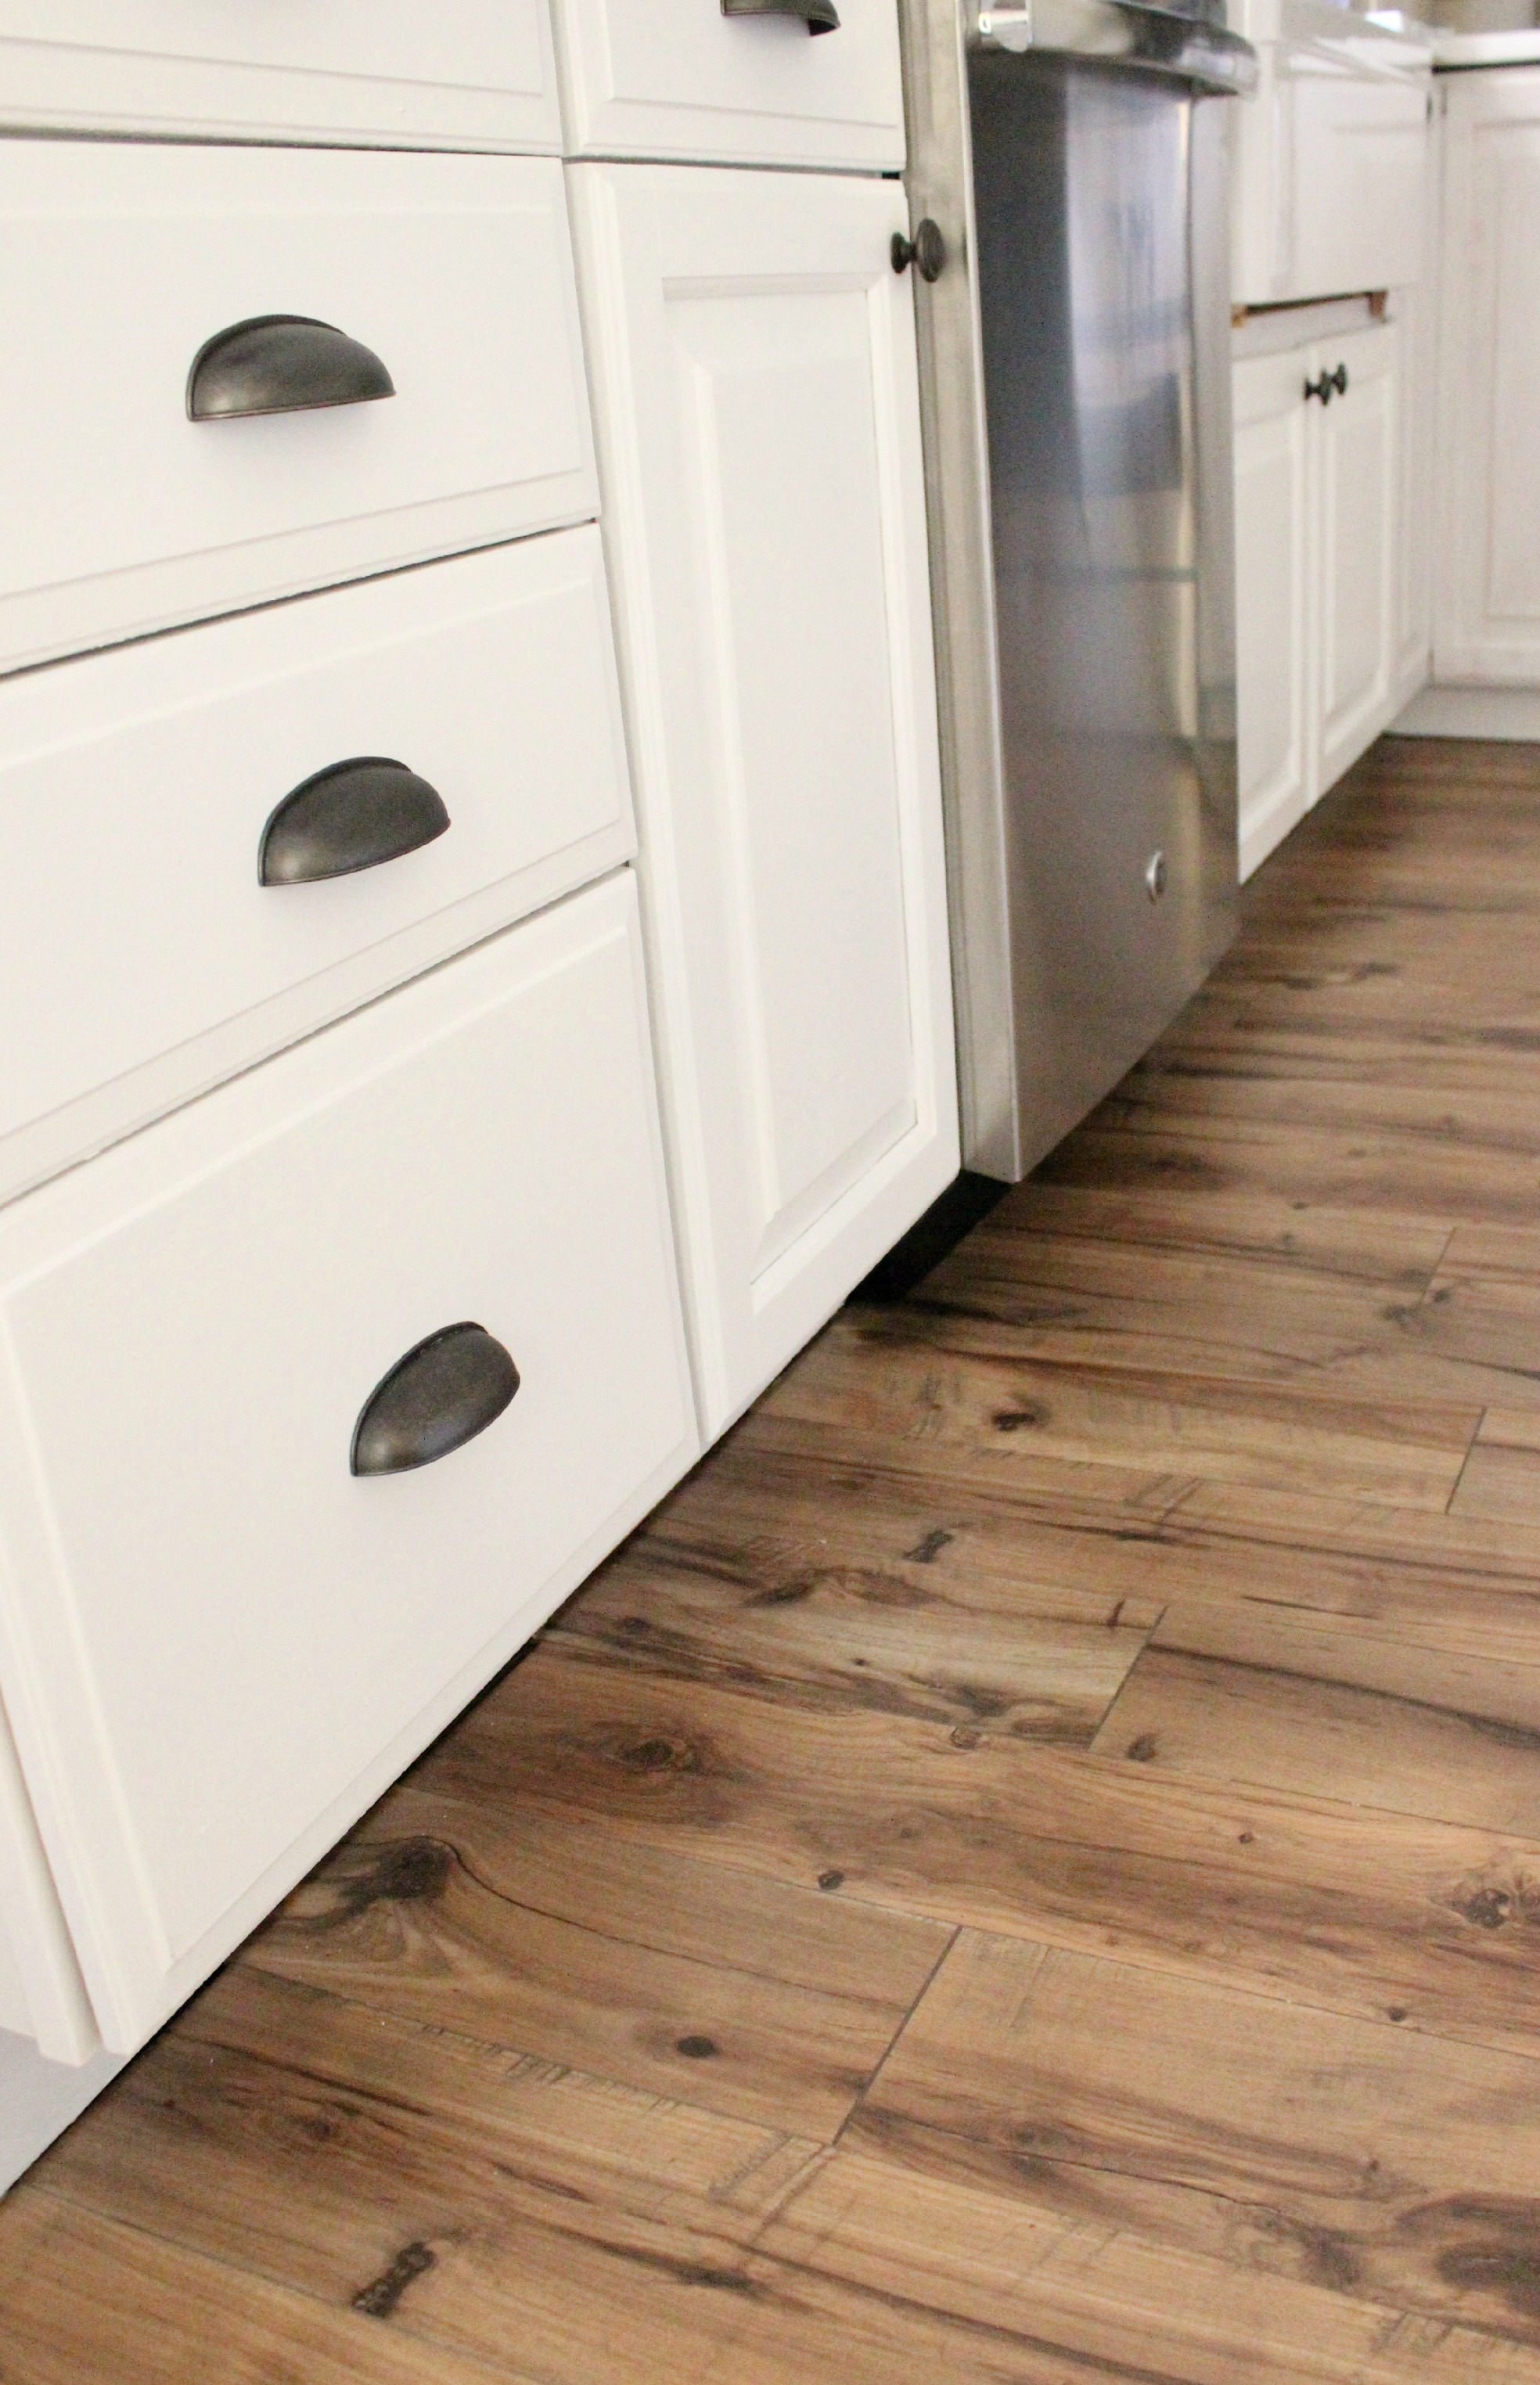 Lowes pergo casual living laminate review home design idea for Laminate flooring reviews